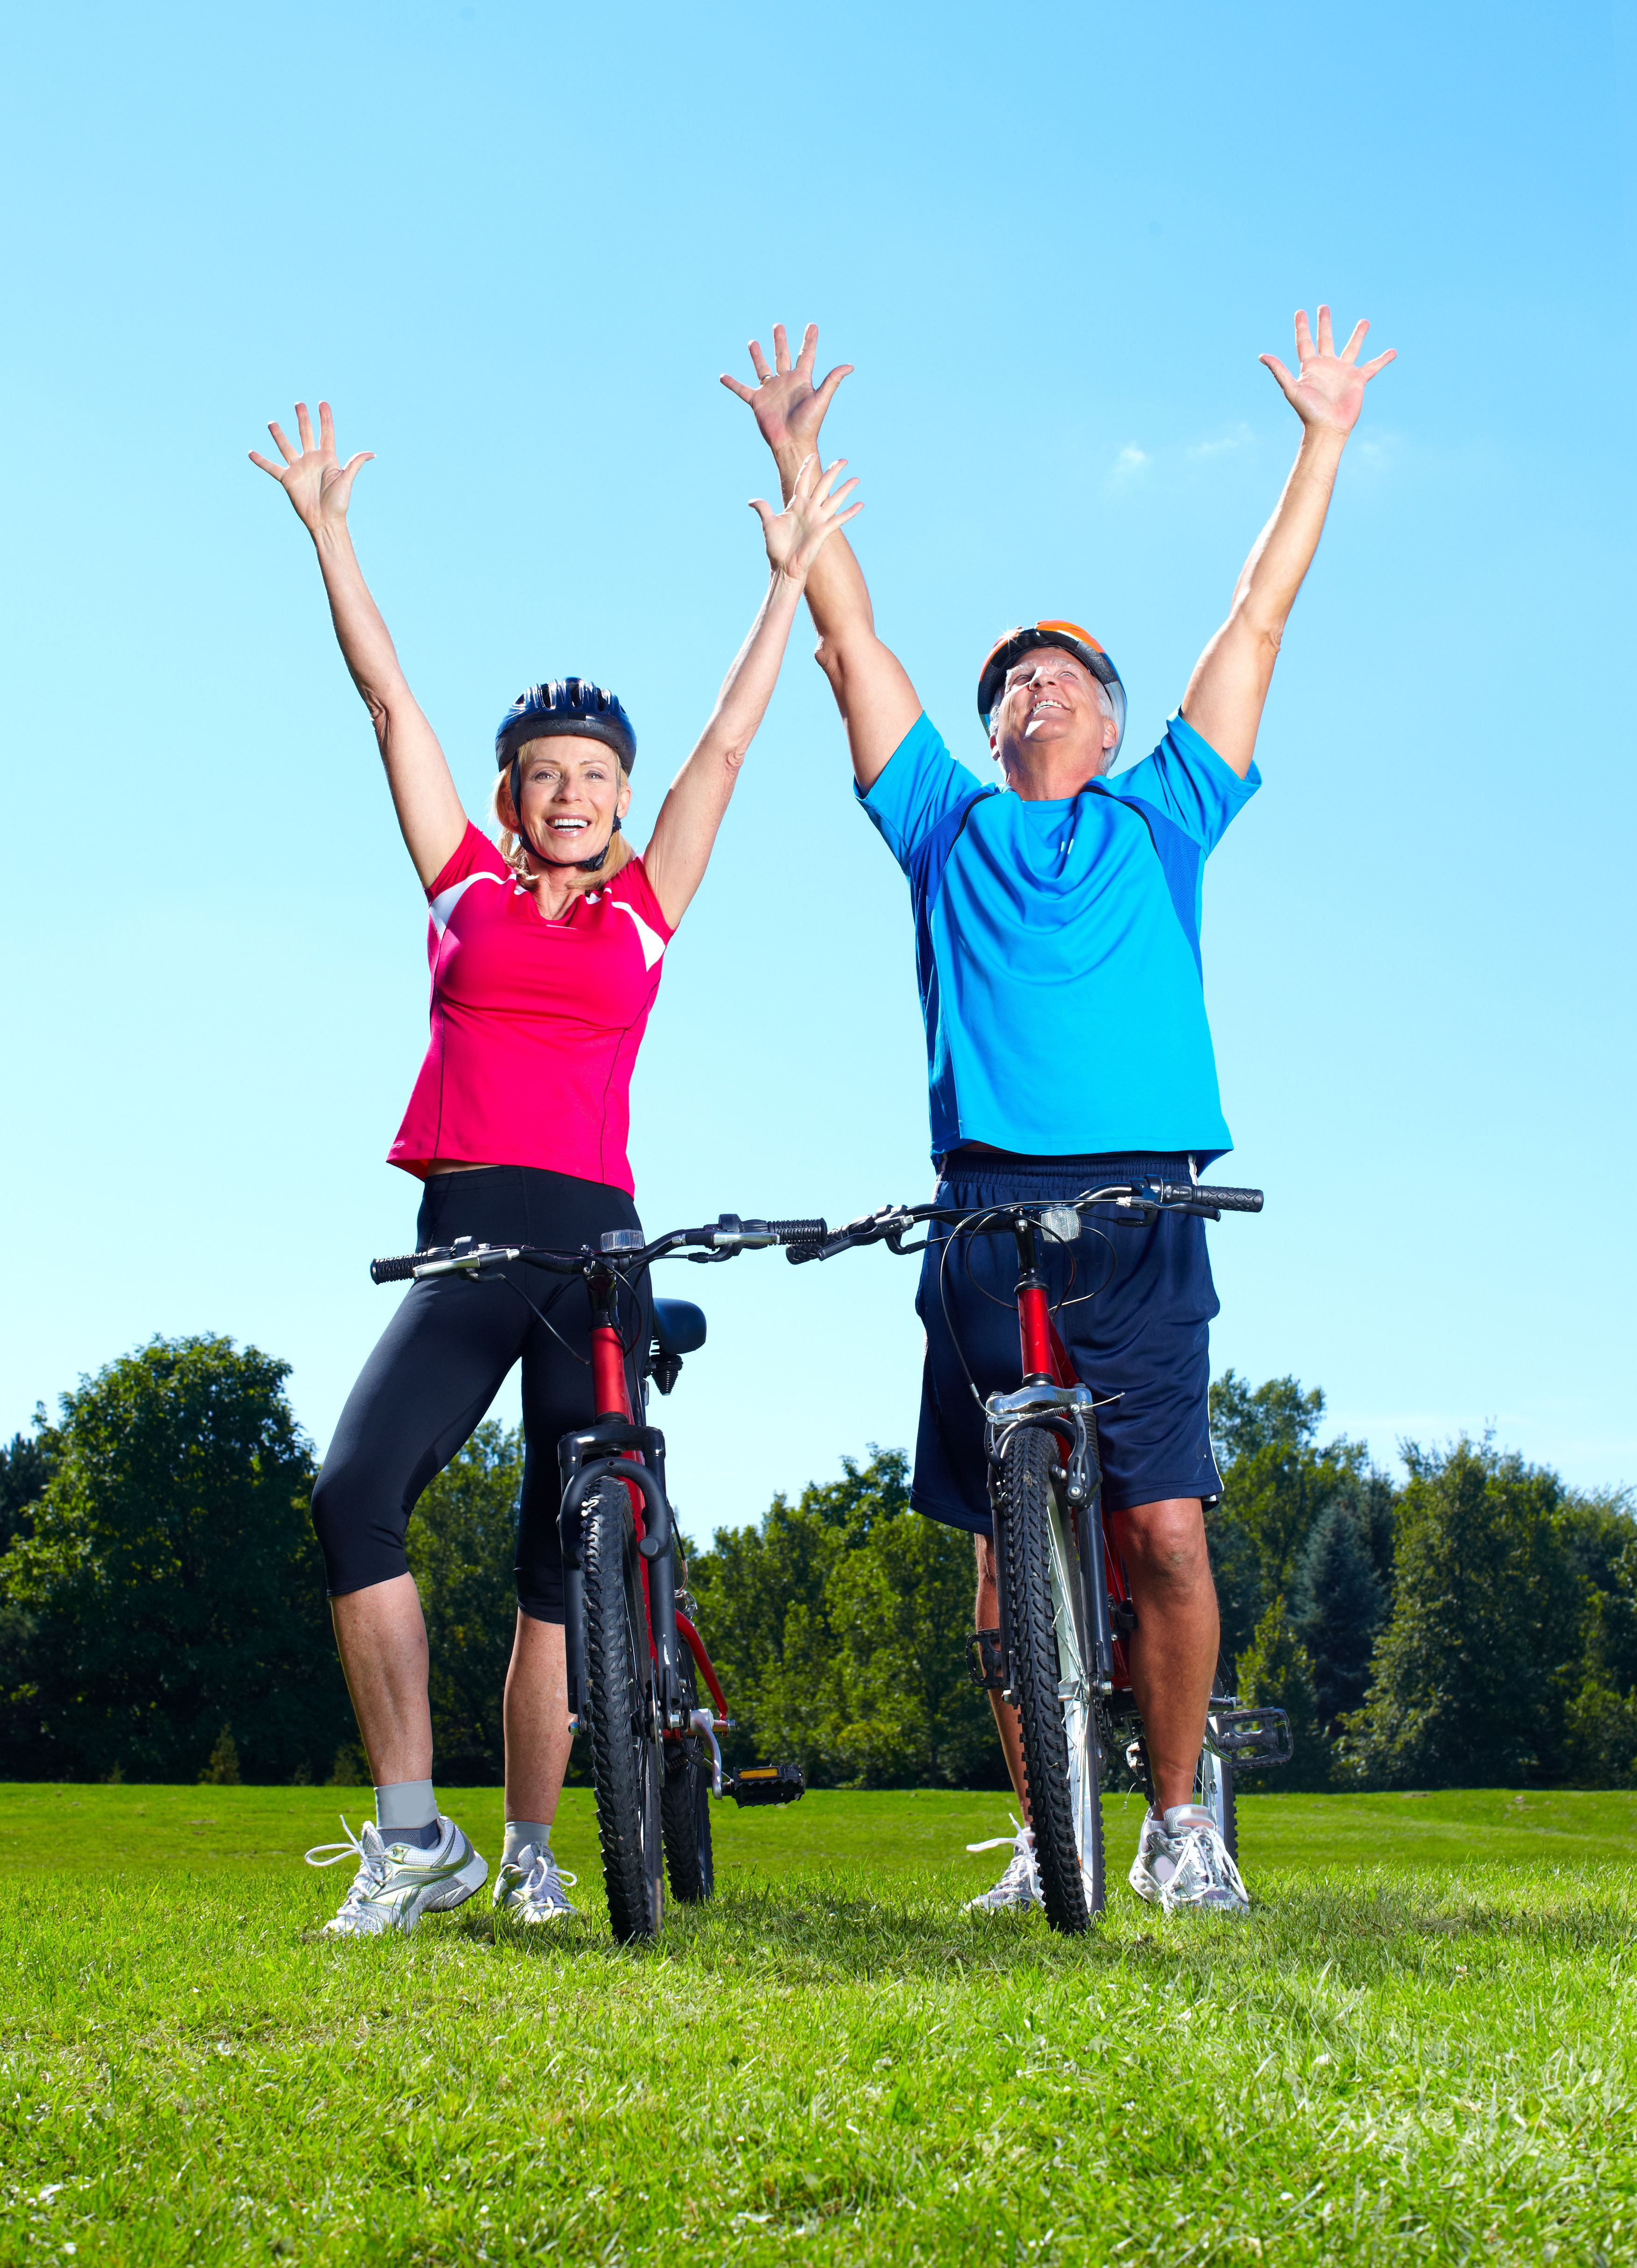 seniors-astride-cycles-hands-in-air-